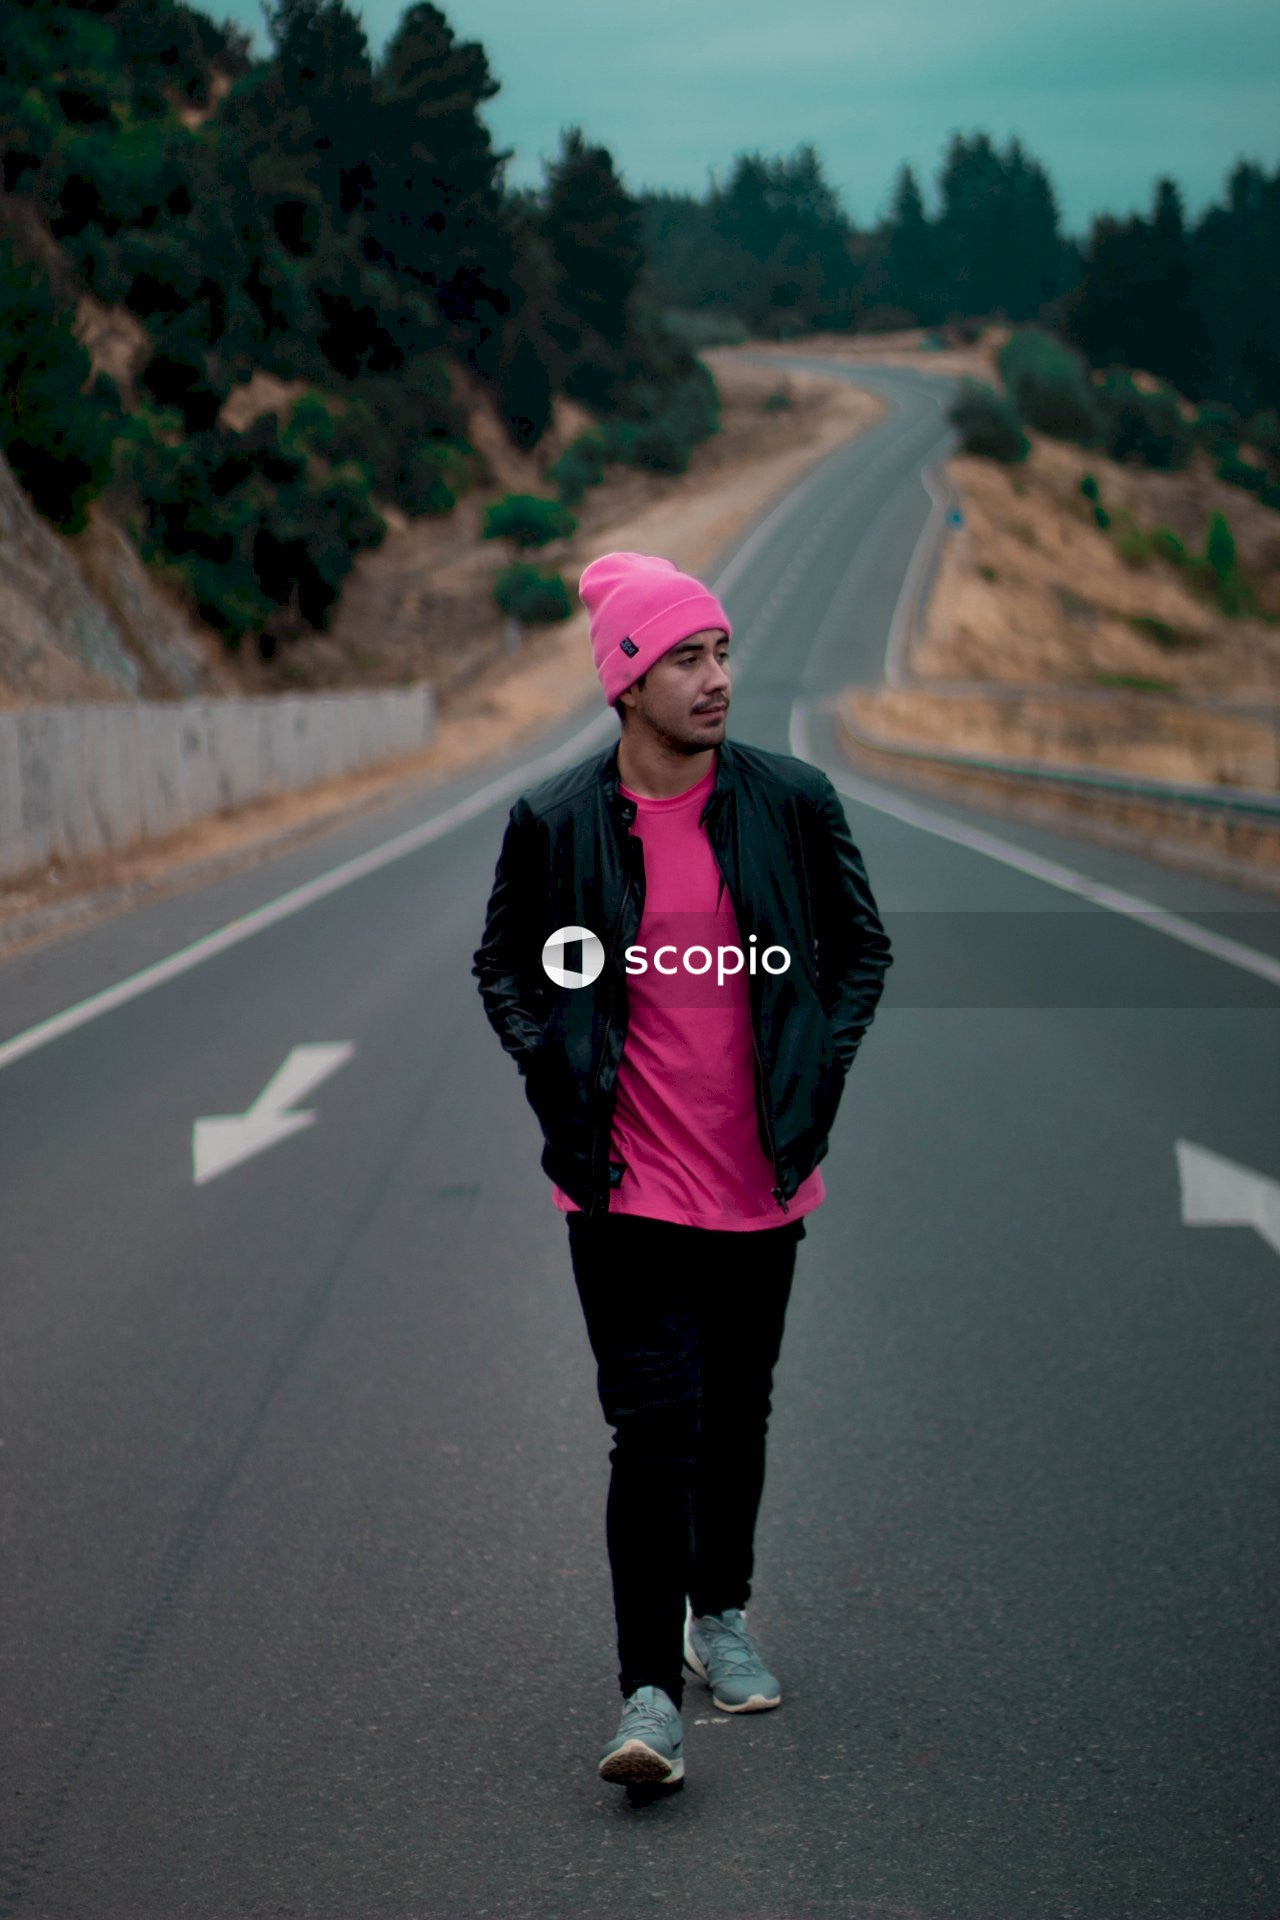 Man stands on road